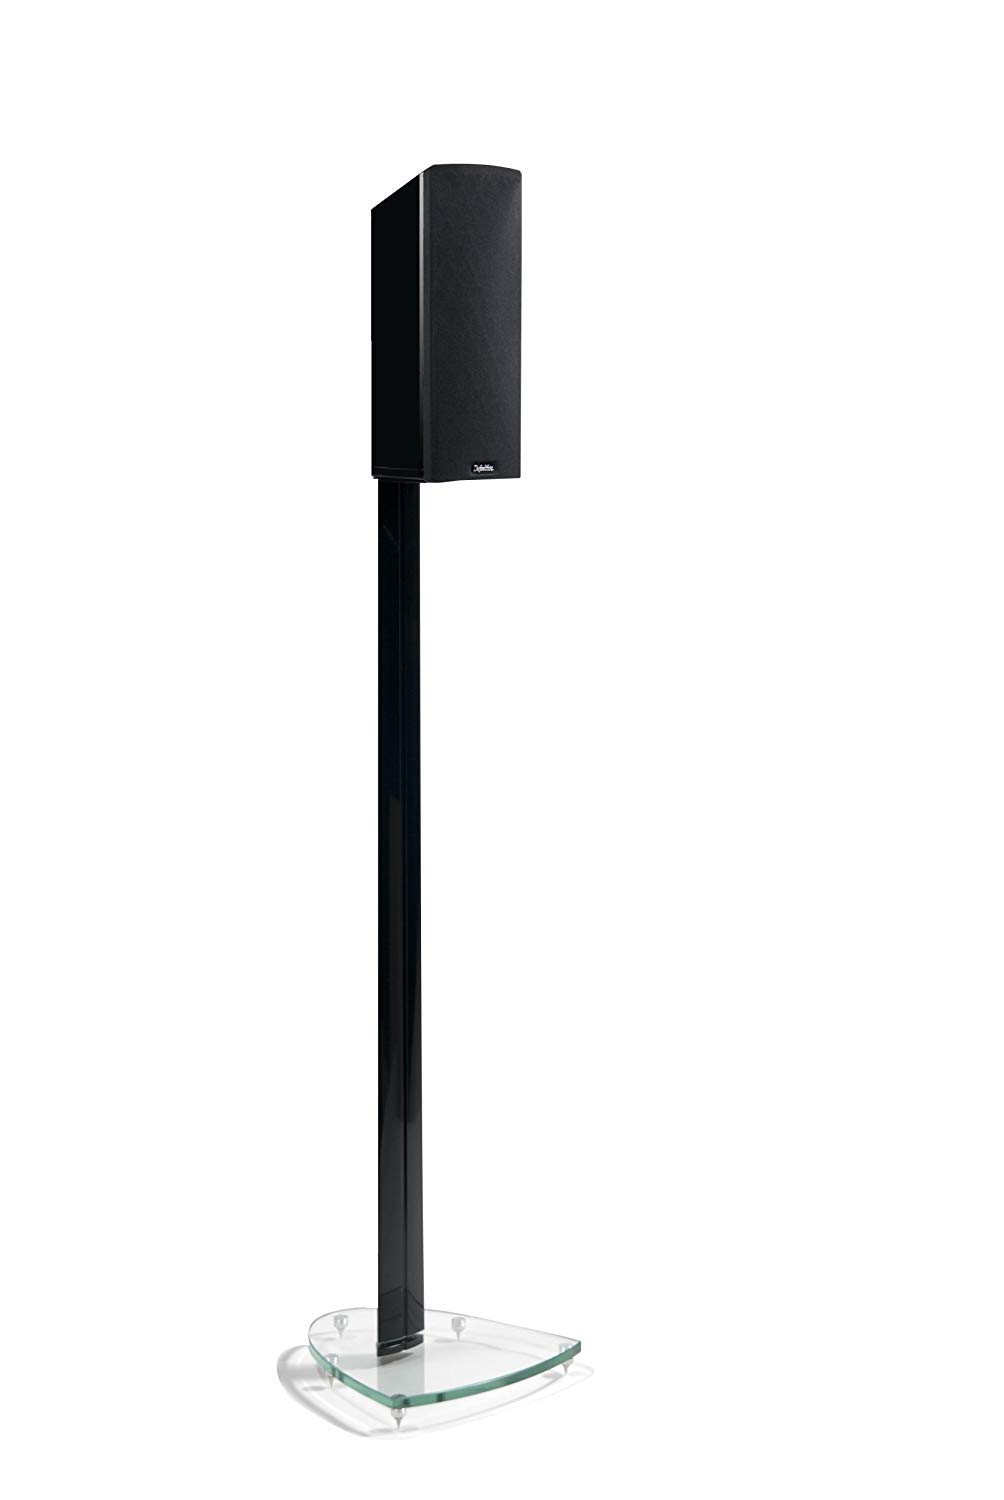 Definitive Technology Mythos Gem Satellite Speakers (Pair, Black) (Discontinued by Manufacturer) by Definitive Technology